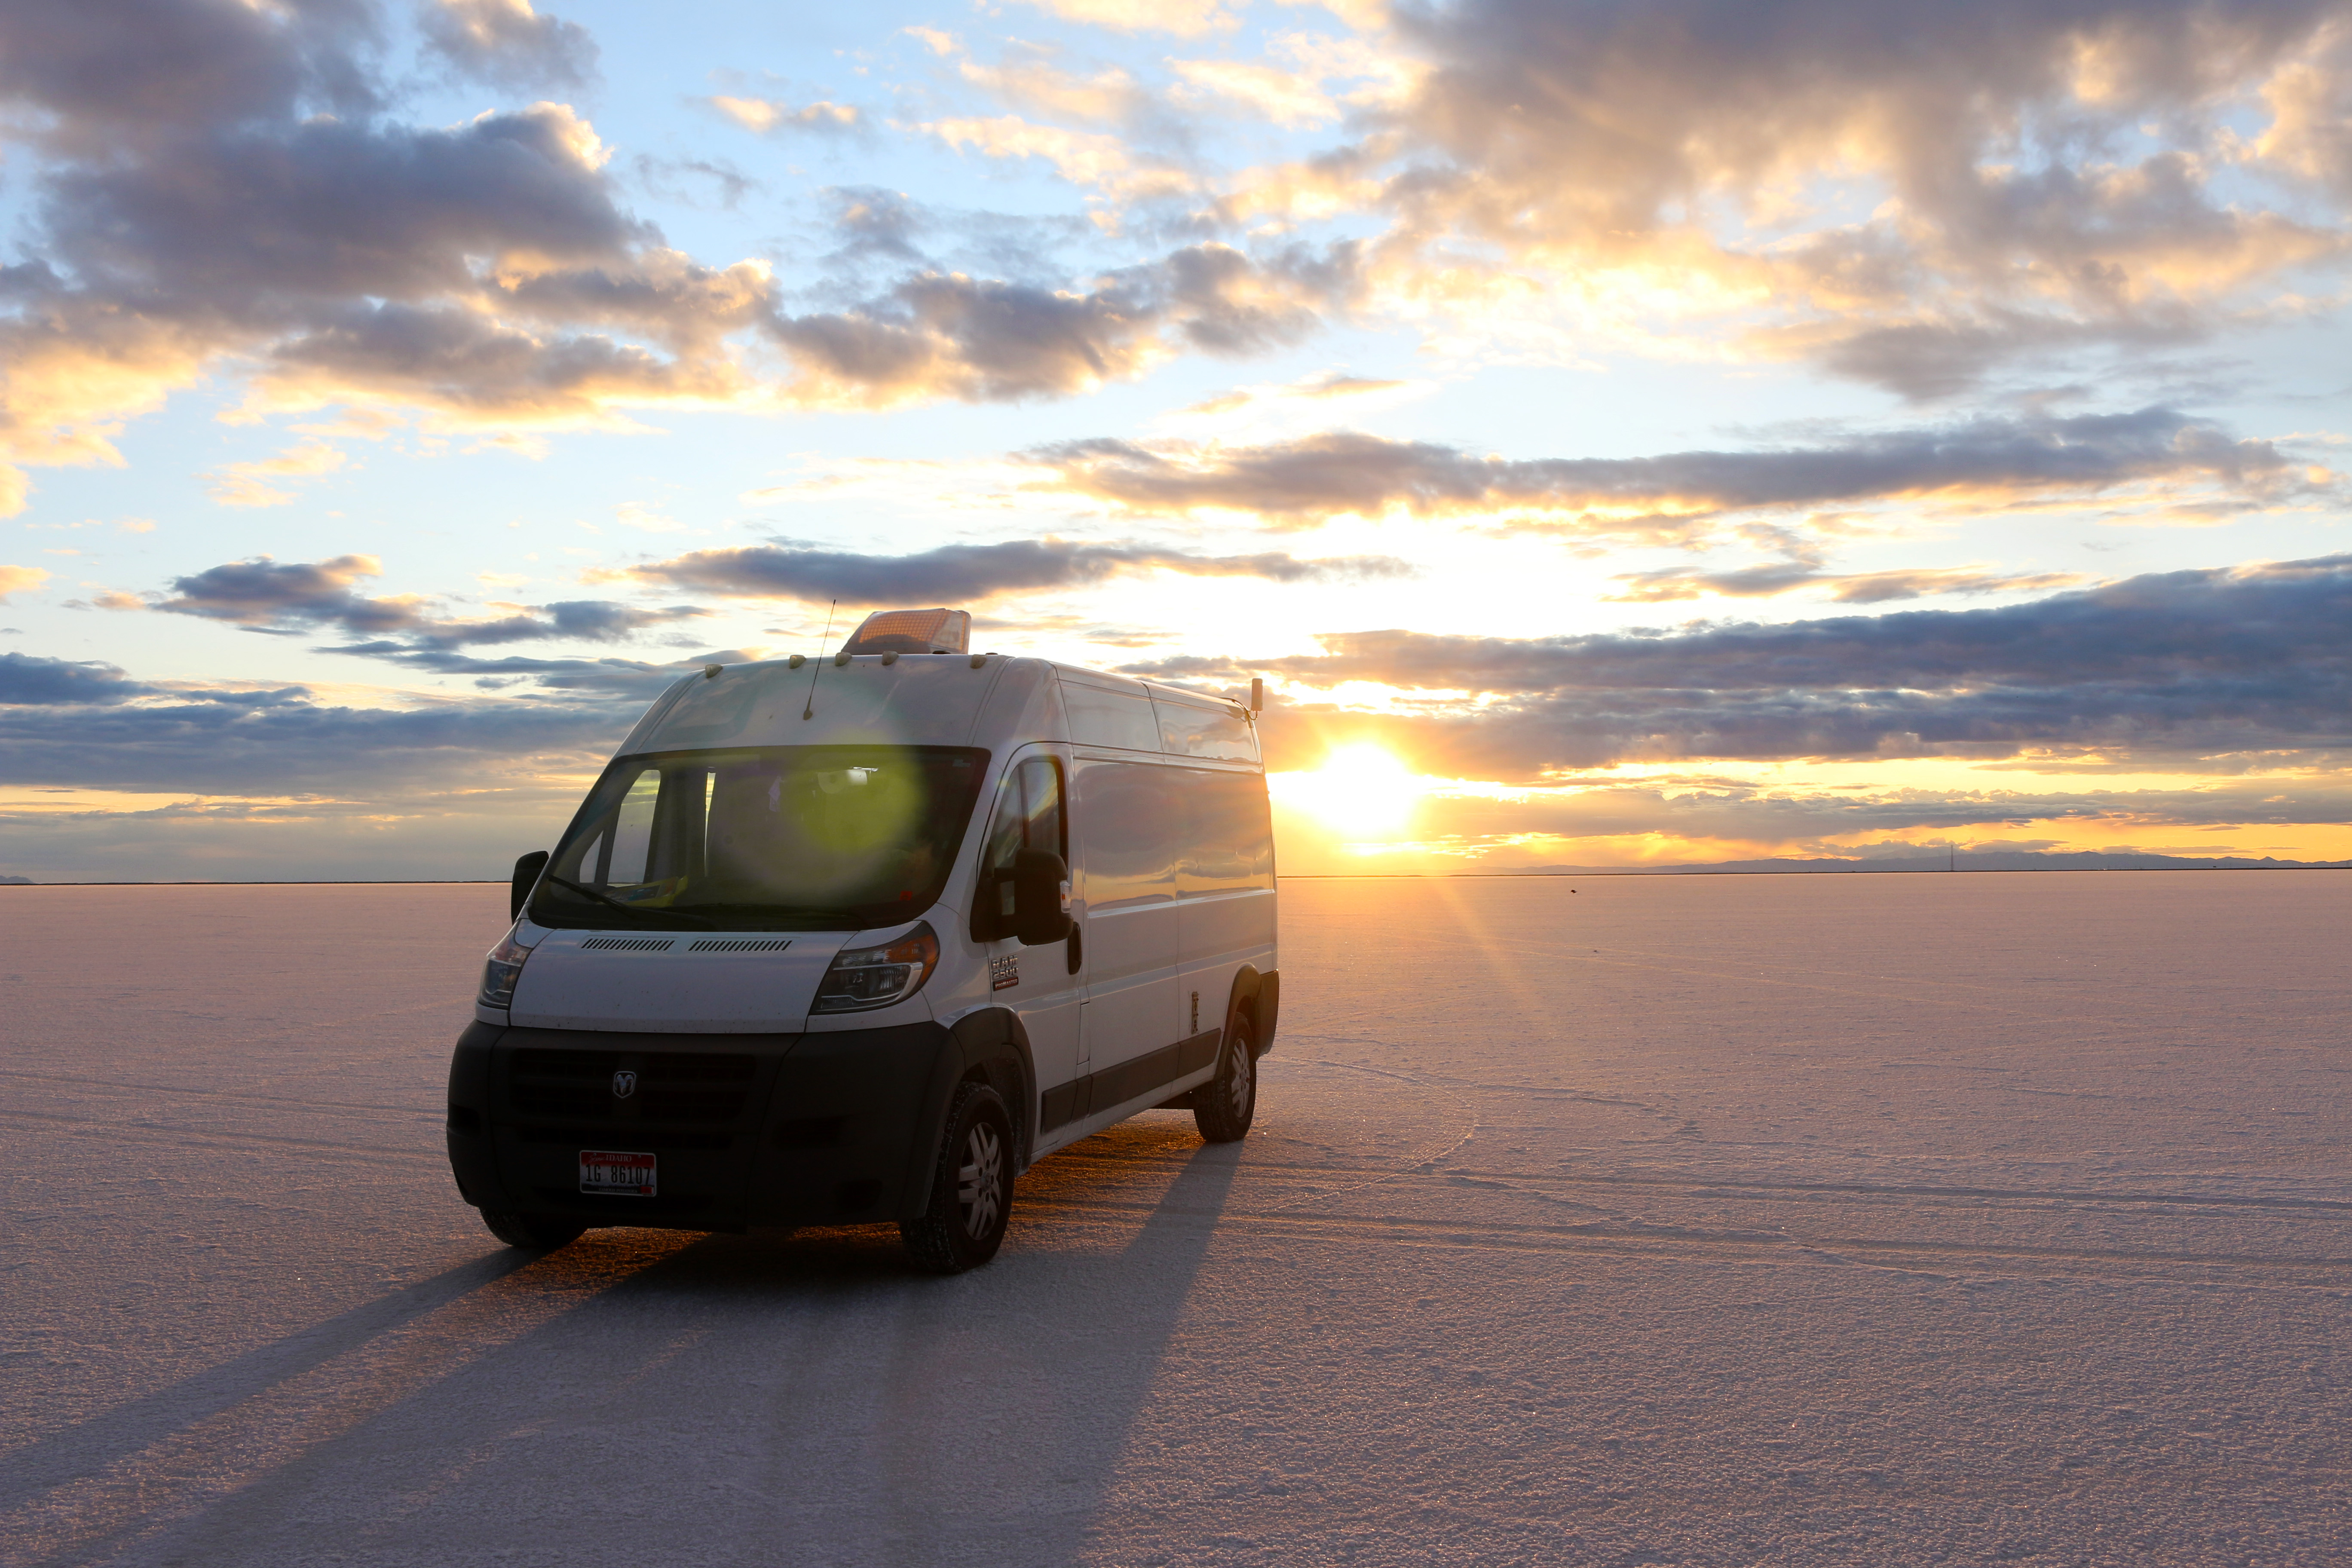 Looking cute at the Salt Flats. Ram Promaster 2014